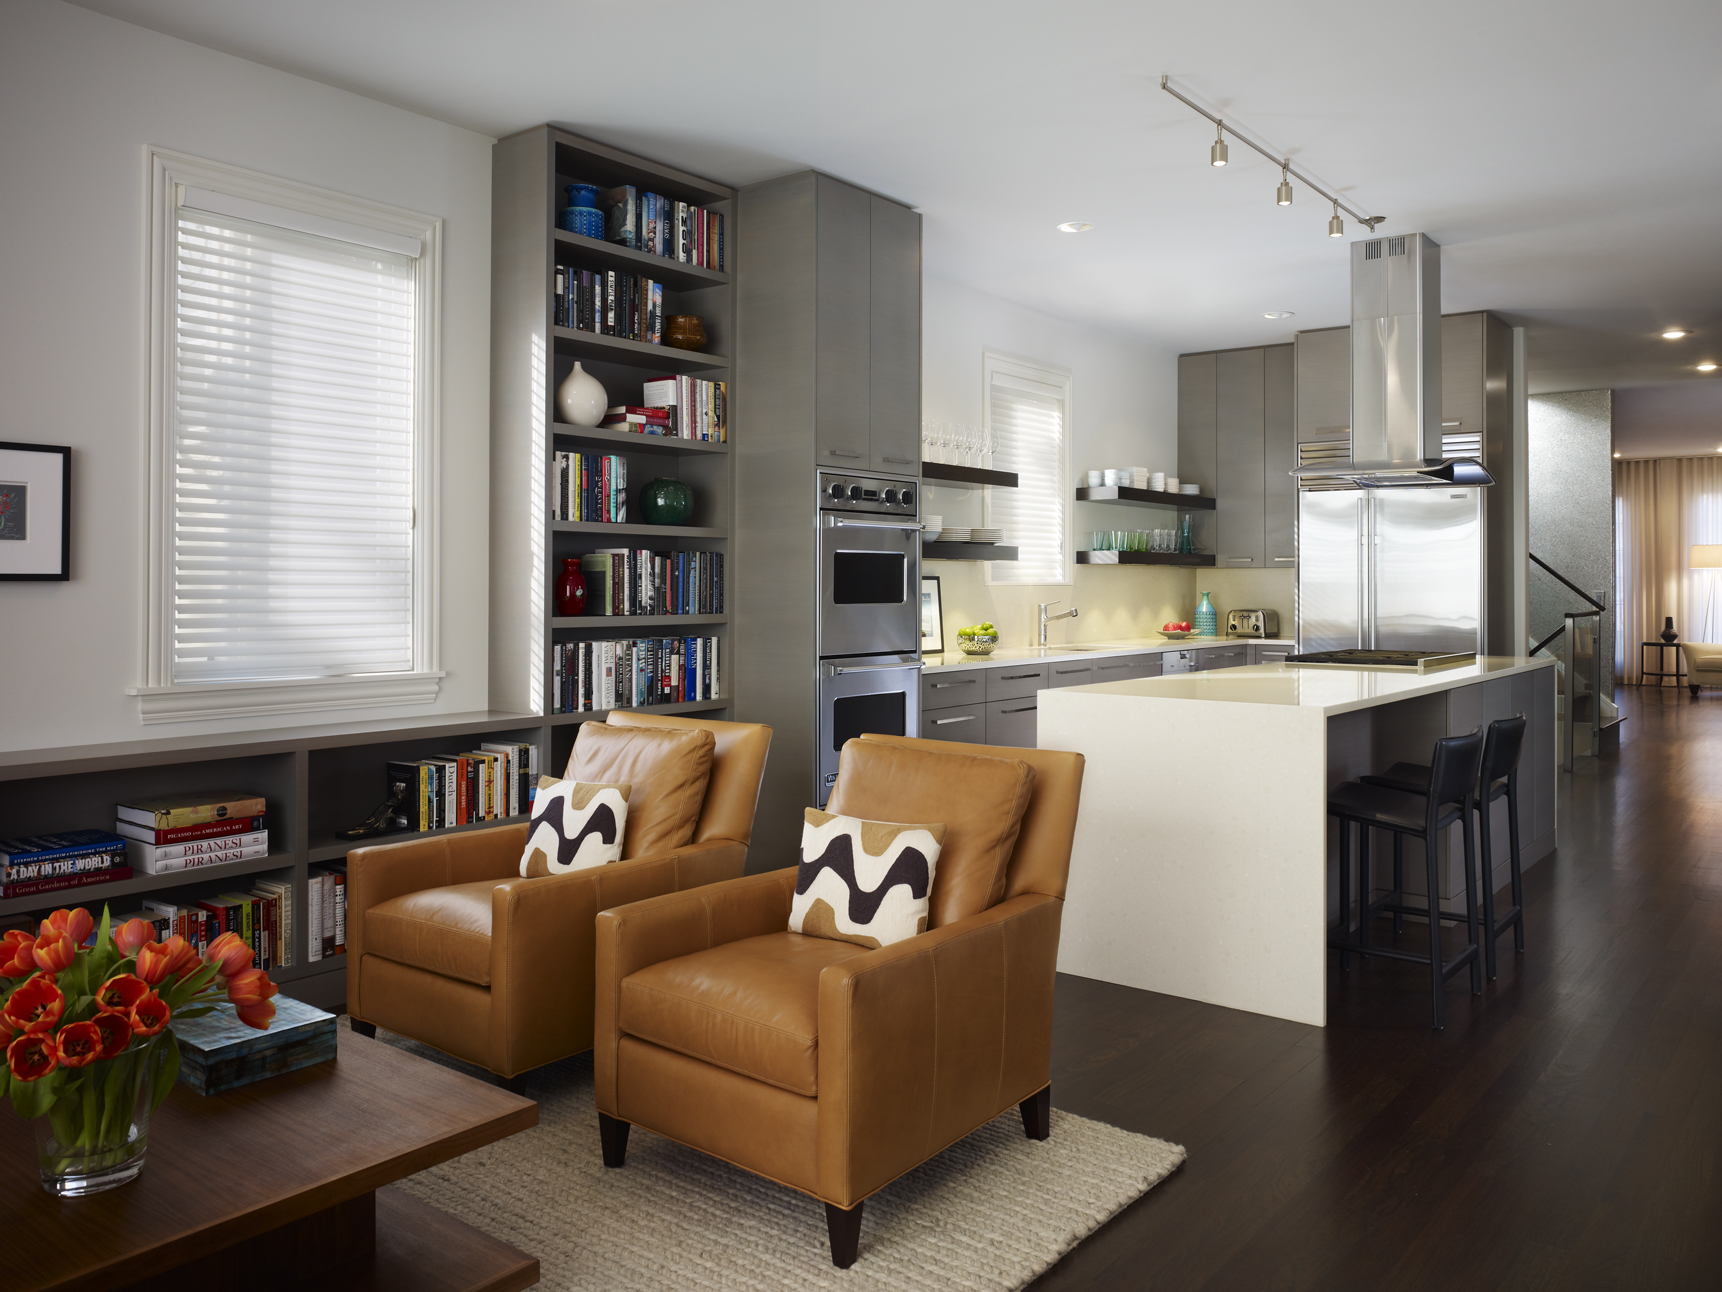 Create the perfect living room for your home by optimizing the color, lighting, furniture placement, accessories, and more. Kitchen Living Room Combo Ideas - HomesFeed